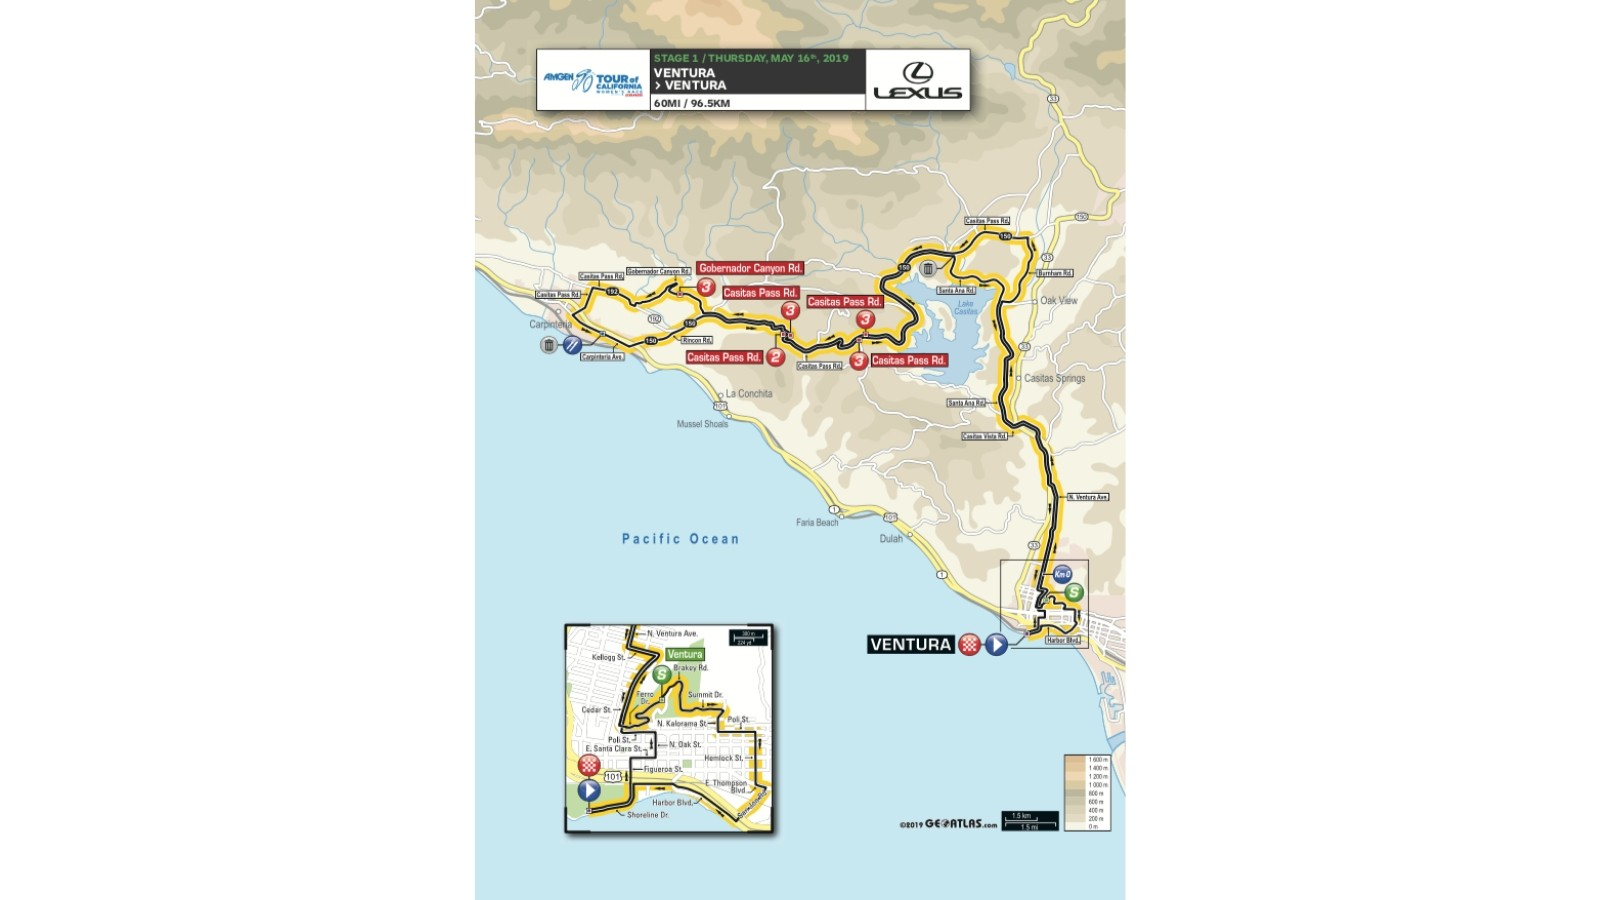 Amgen Tour of California 2019 women's race stage 1 route map